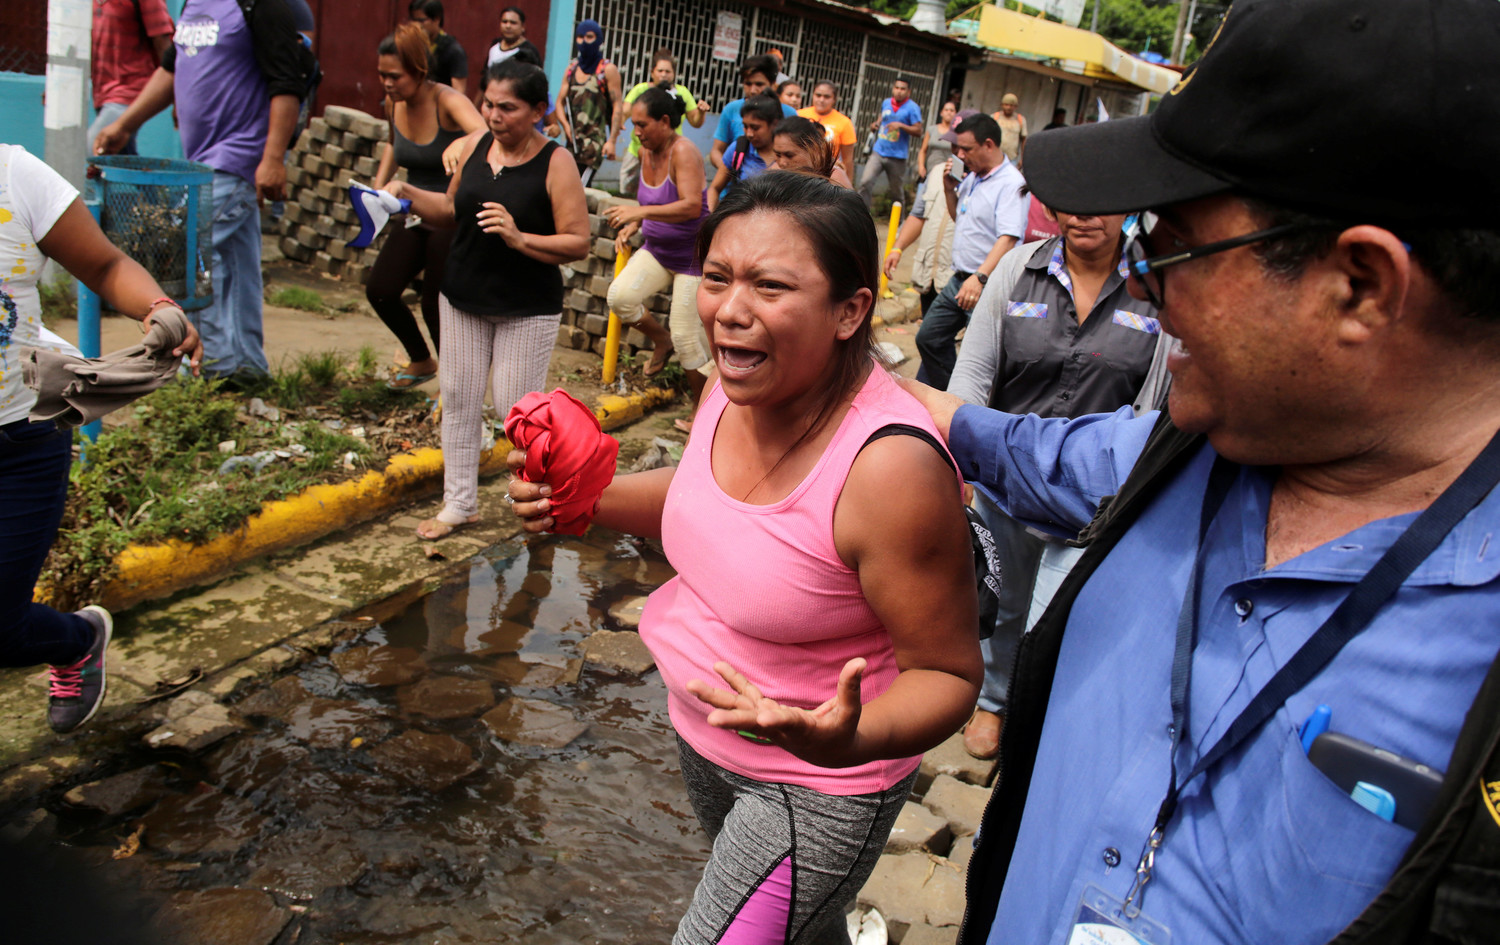 A woman reacts during the arrival of Catholic leaders as anti-government protests continue in Masaya, Nicaragua, June 21.